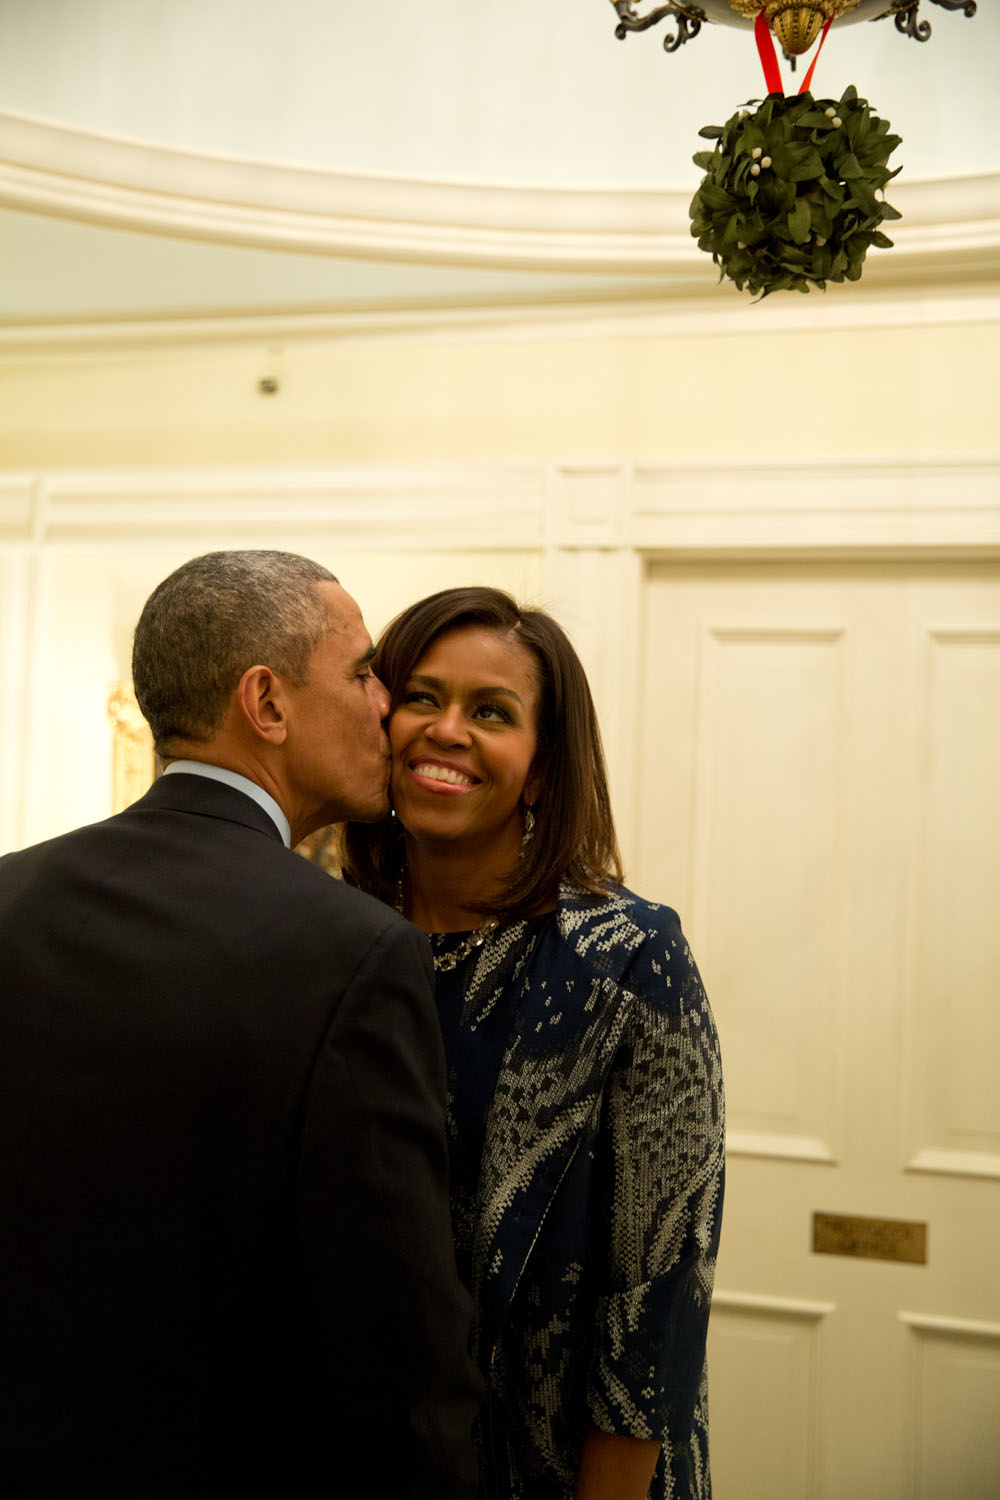 First Lady Michelle Obama Kissed On Cheek By Husband, Barack.